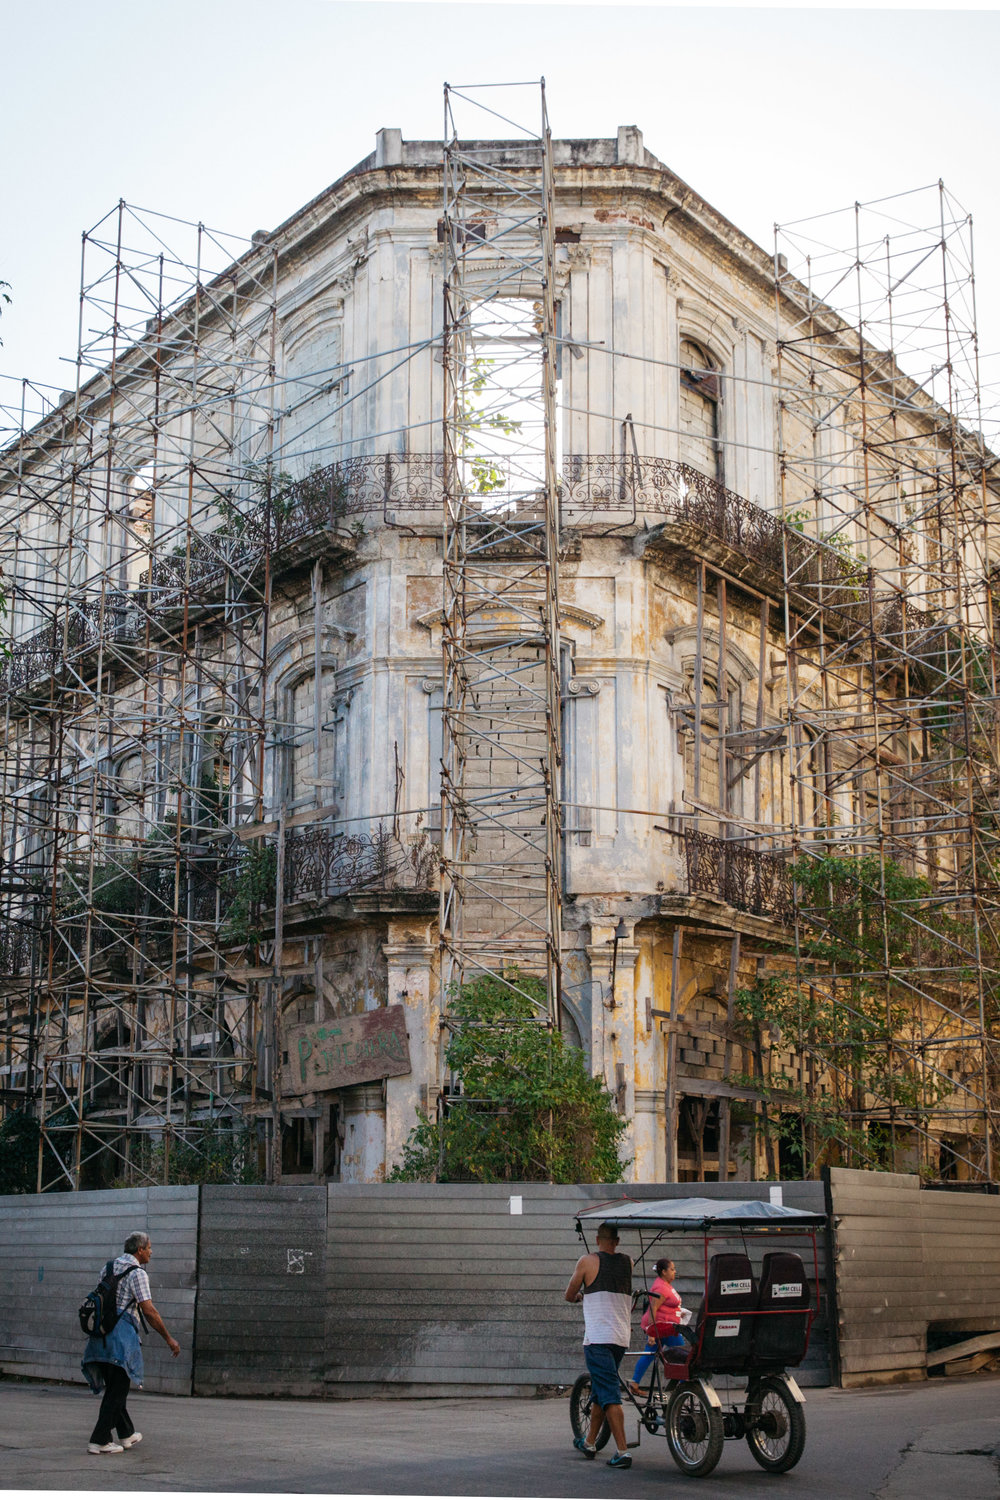 An old building being renovated in Habana Vieja, Cuba.